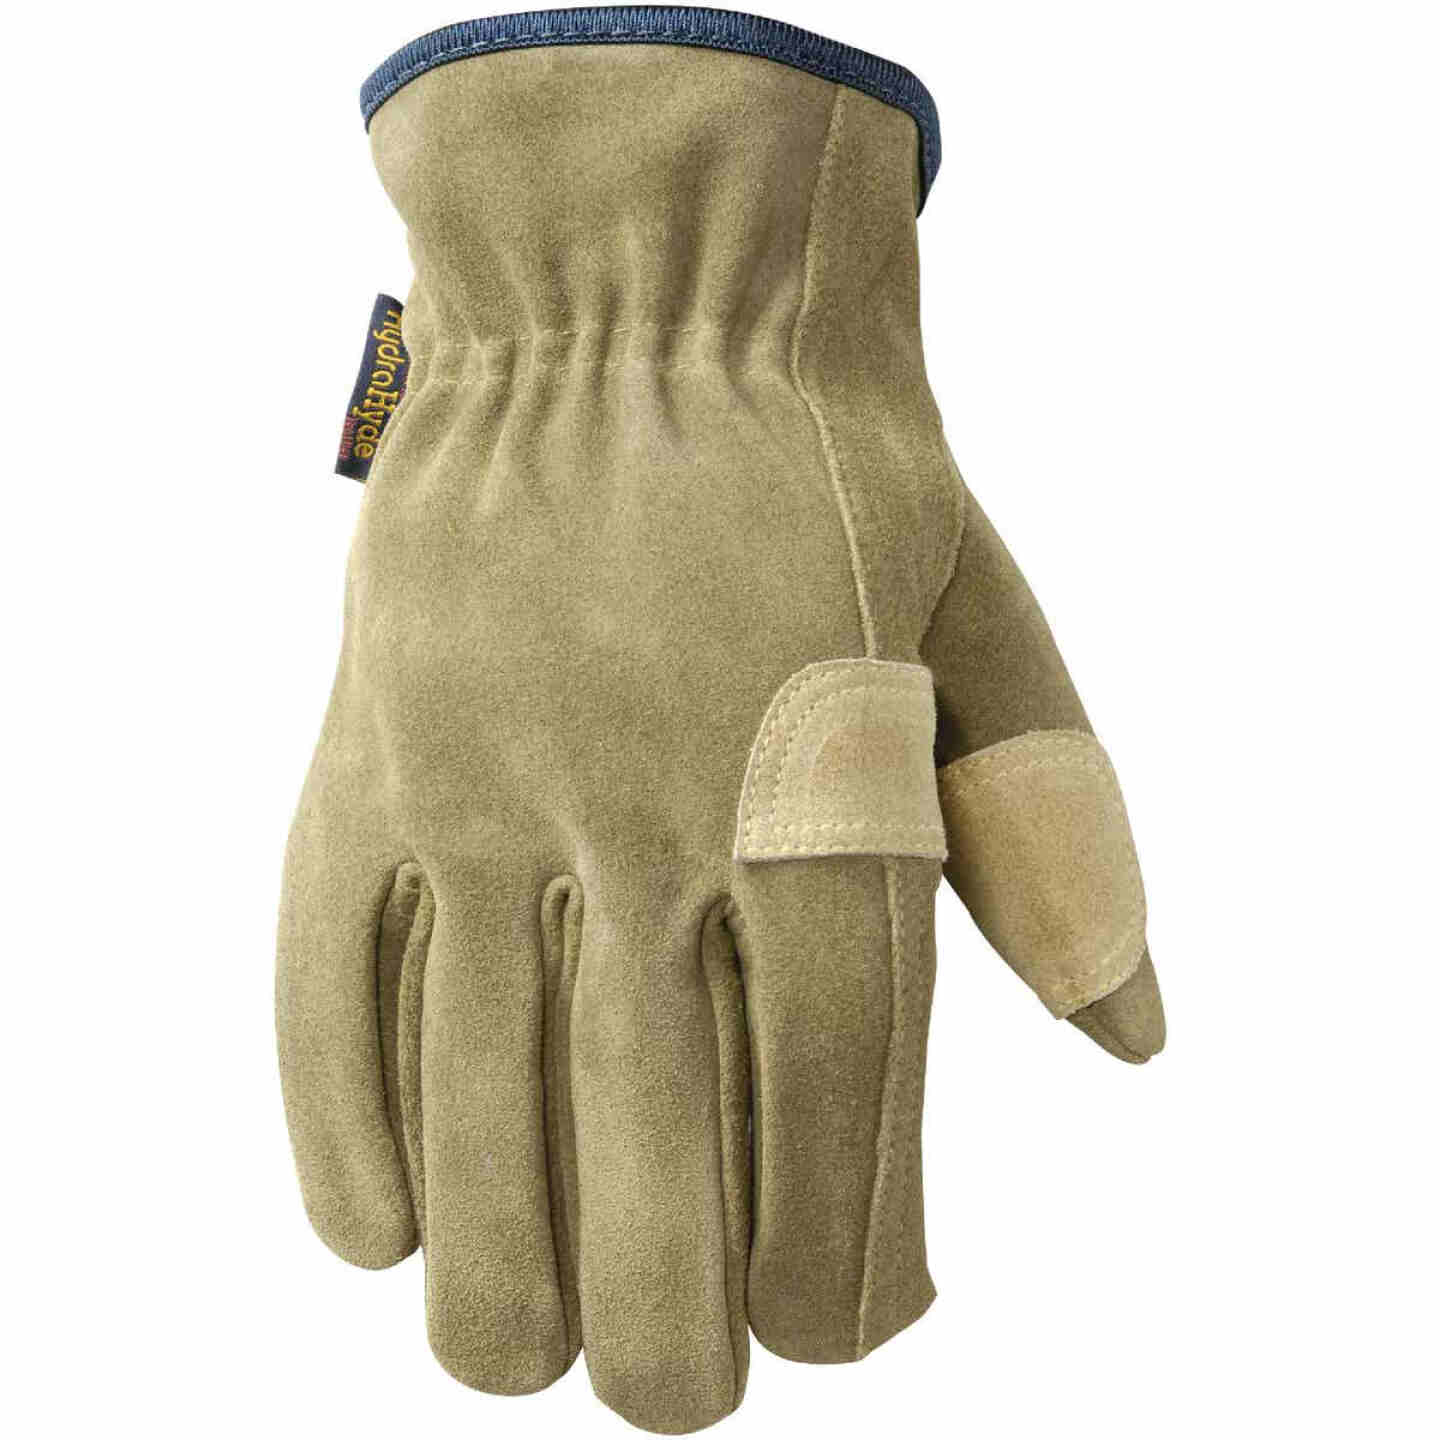 Wells Lamont HydraHyde Men's Large Suede Leather Work Glove Image 1